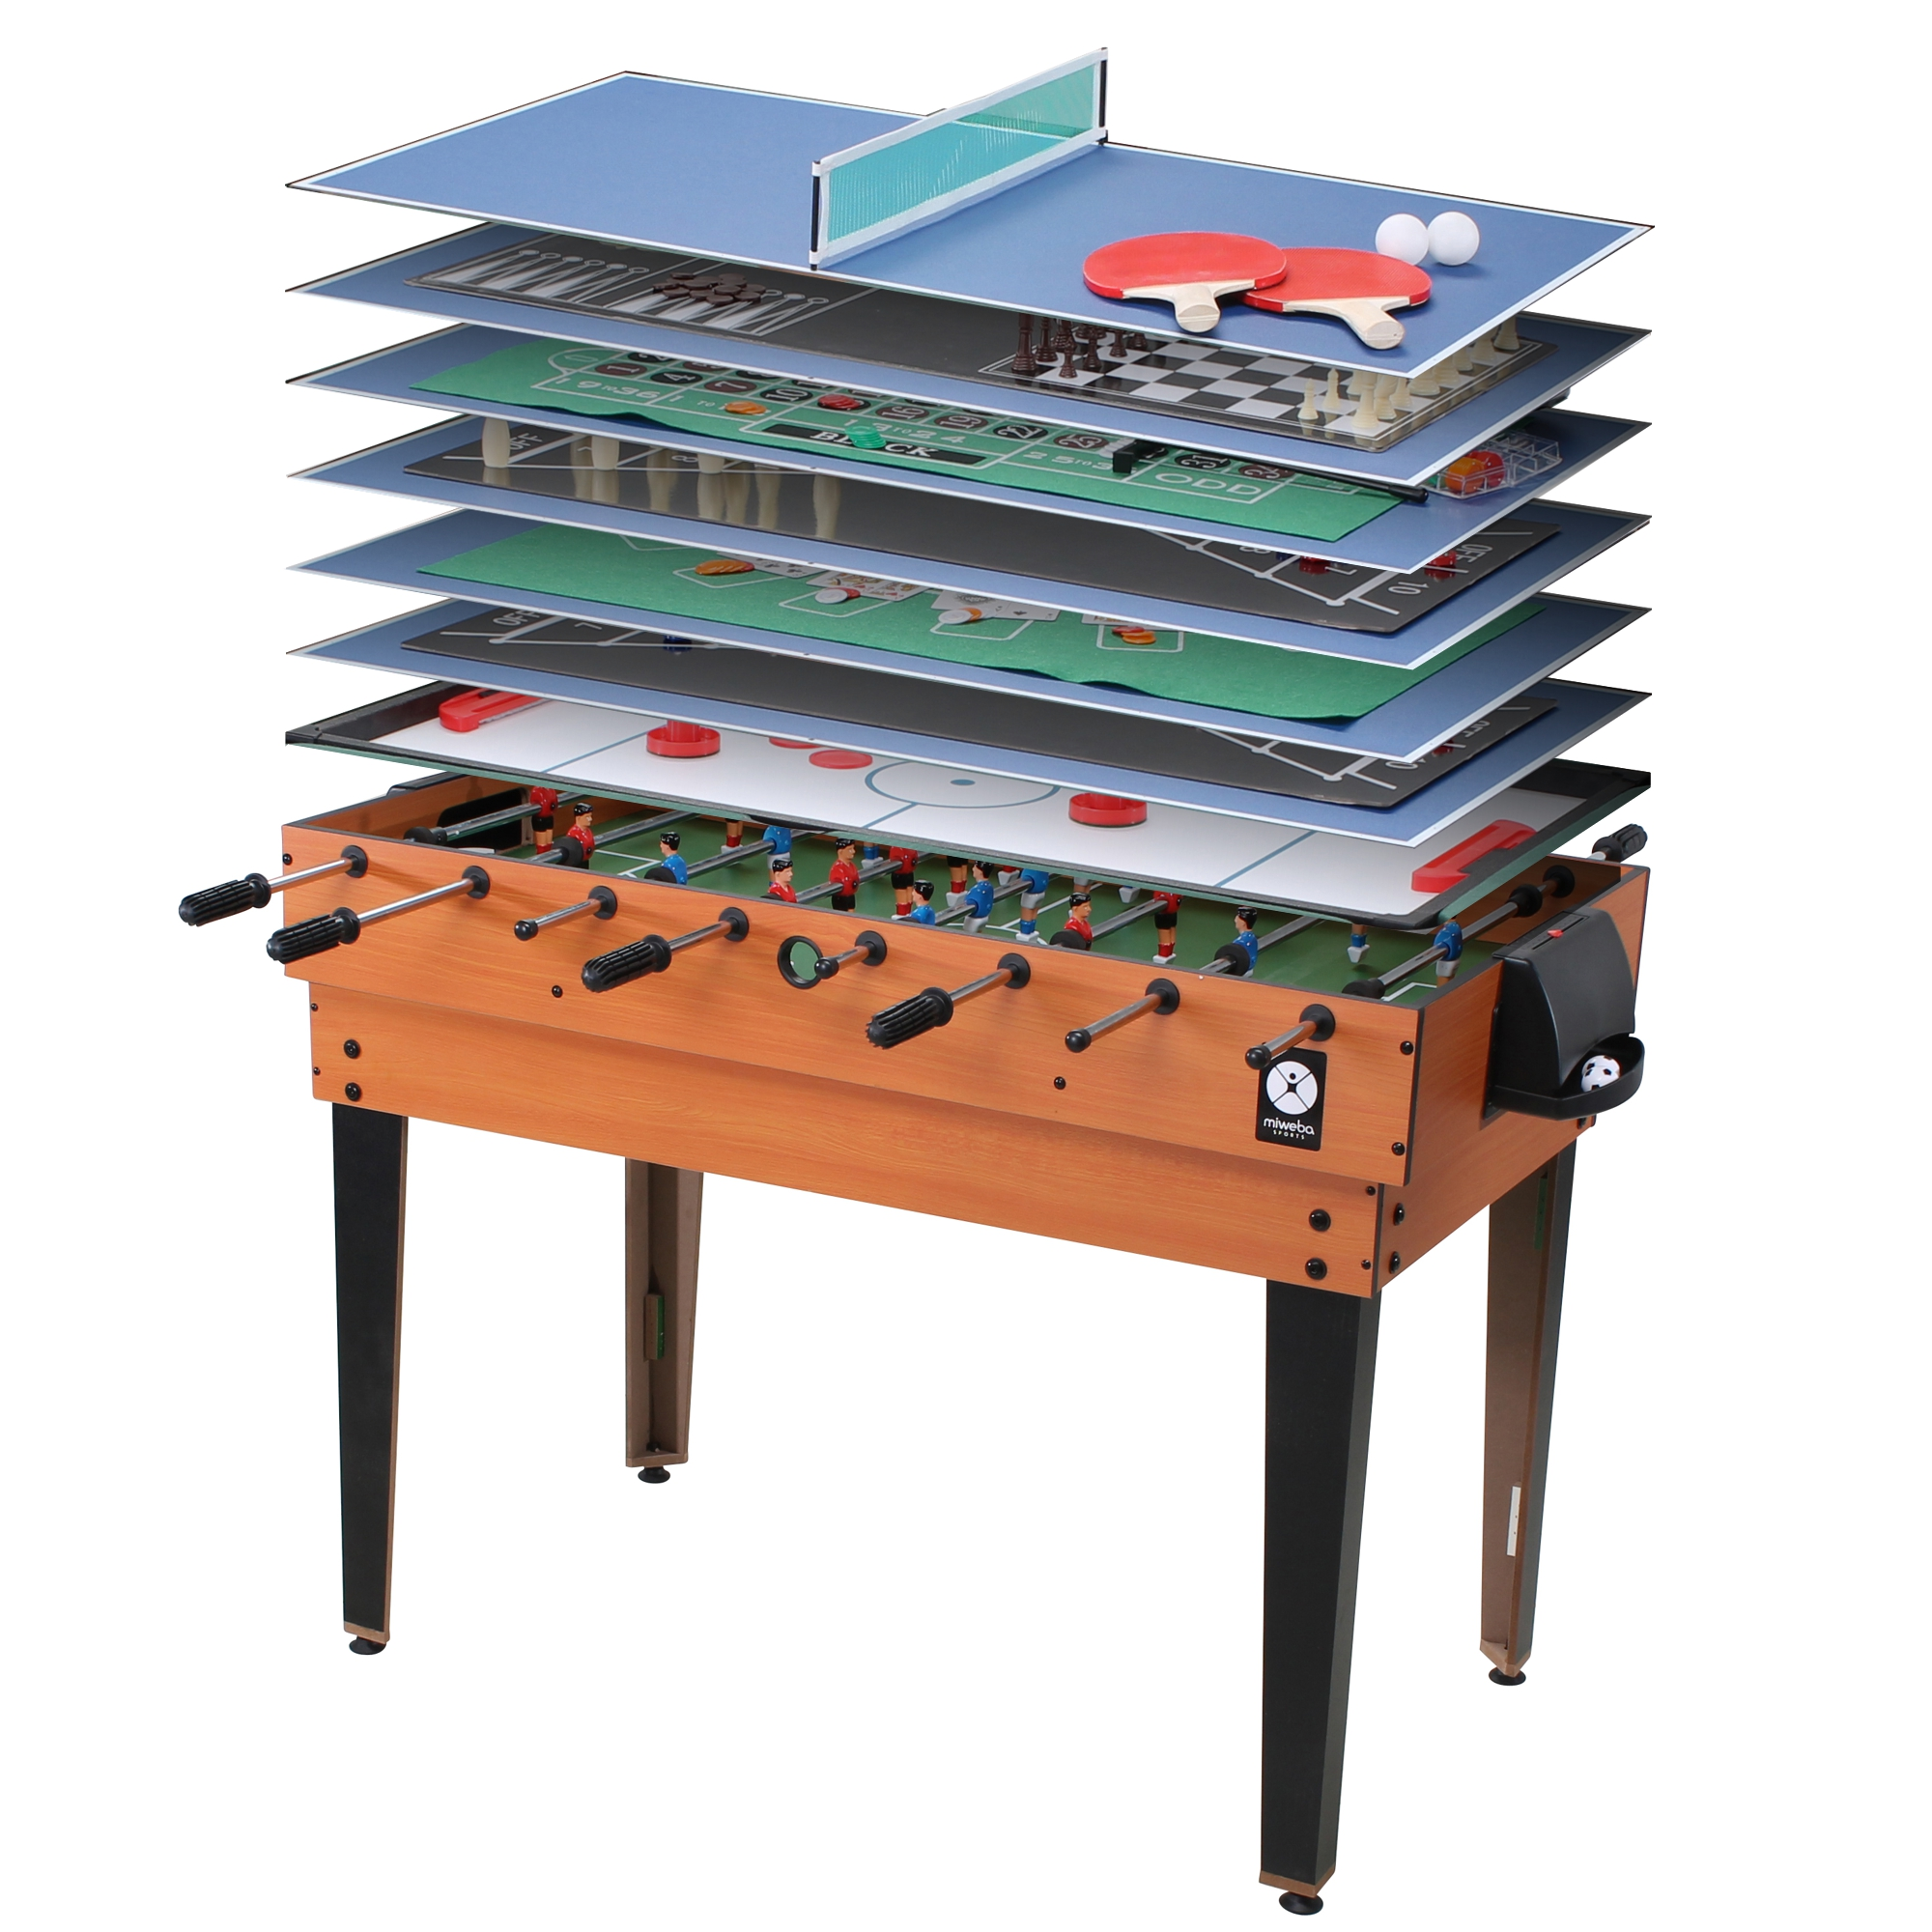 quadfactory bottrop miweba multigame spieletisch 15 in 1 tischfu ball kicker billard hockey. Black Bedroom Furniture Sets. Home Design Ideas